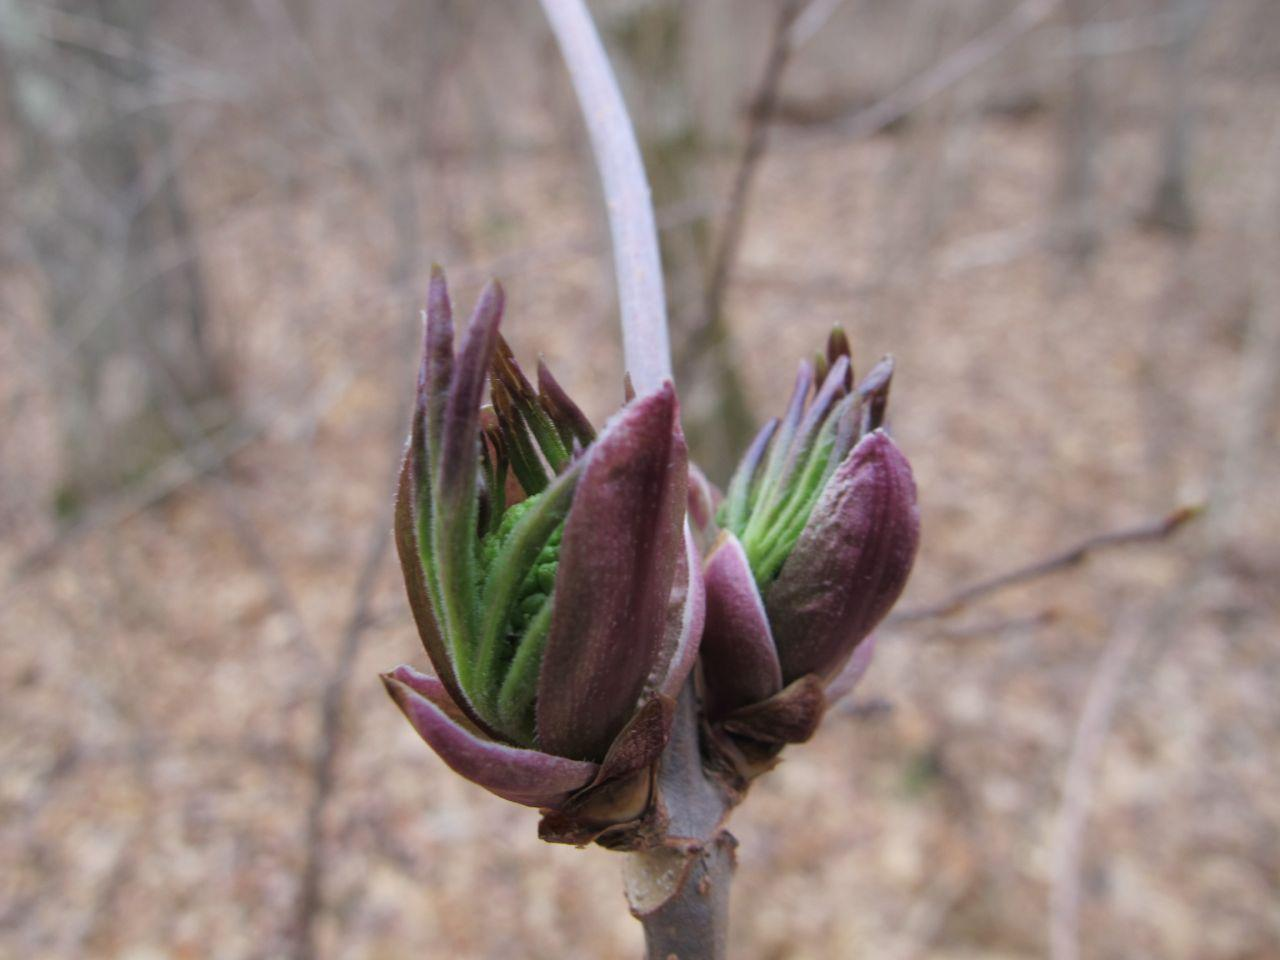 Elderberry bud